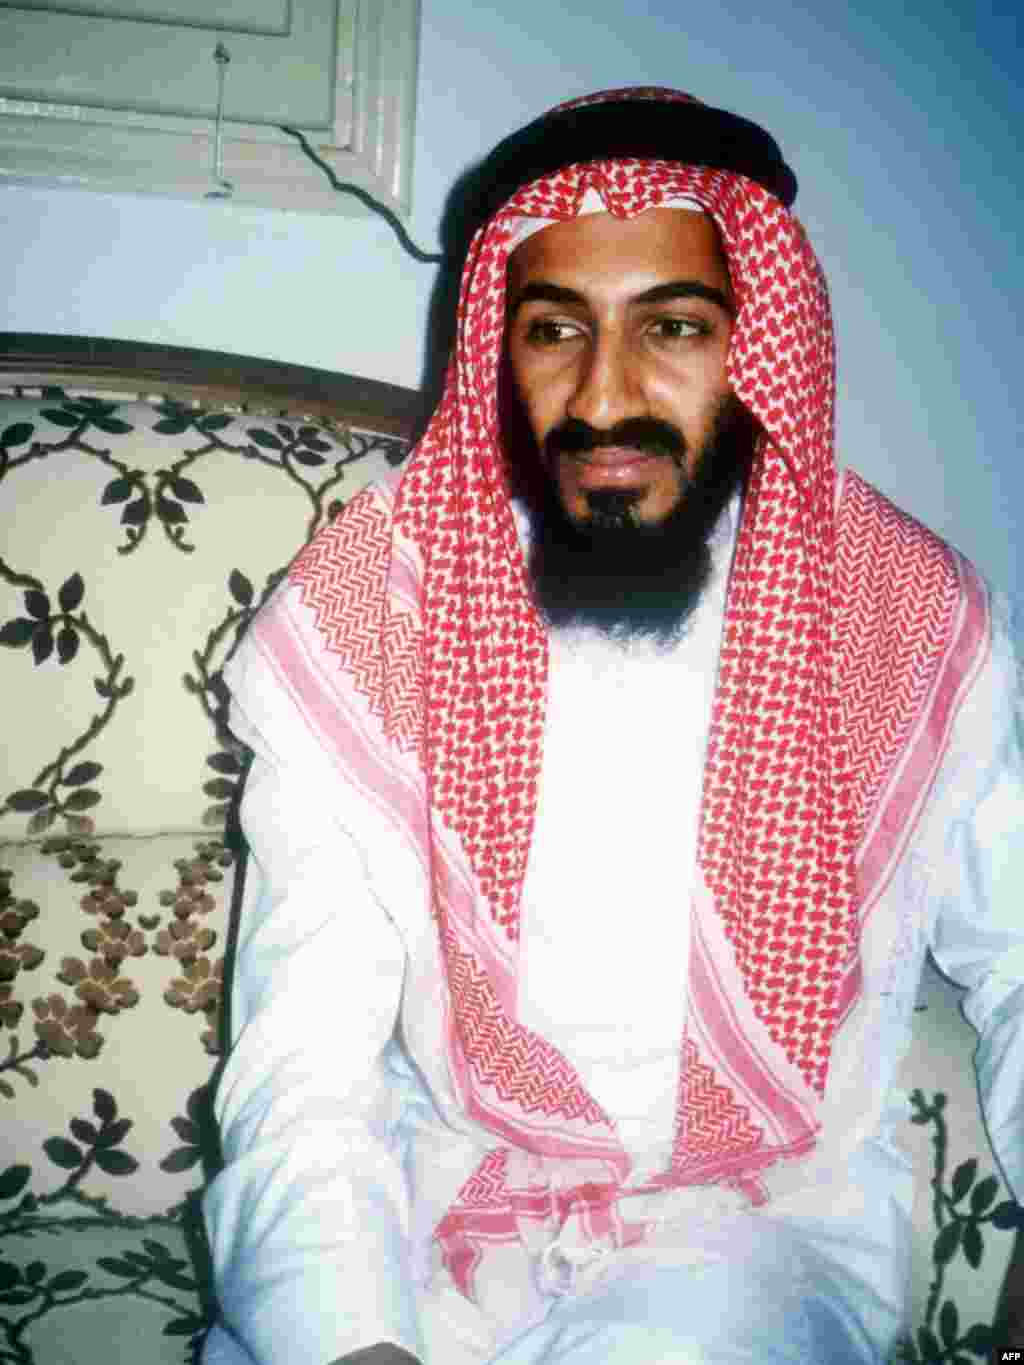 Osama bin Laden in traditional Saudi dress in this 1988 photo taken in Jeddah.